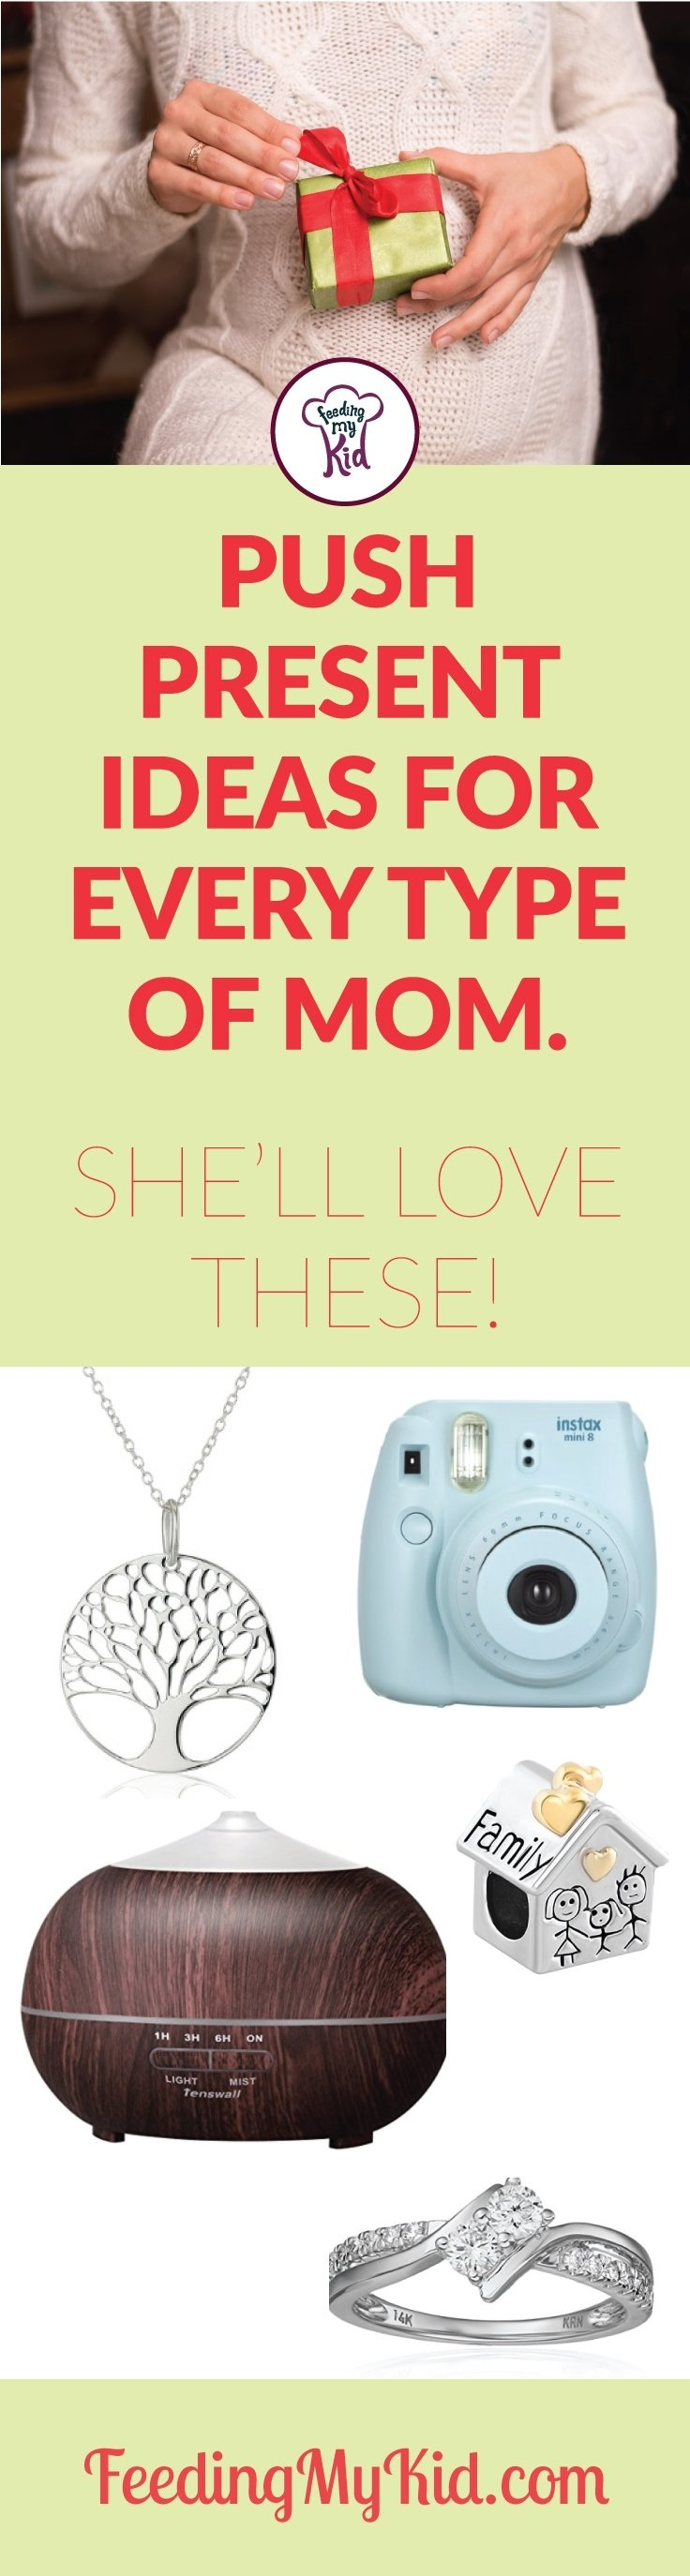 10 Wonderful Push Gift Ideas For Mom push present ideas for every type of mom shell love these 2021